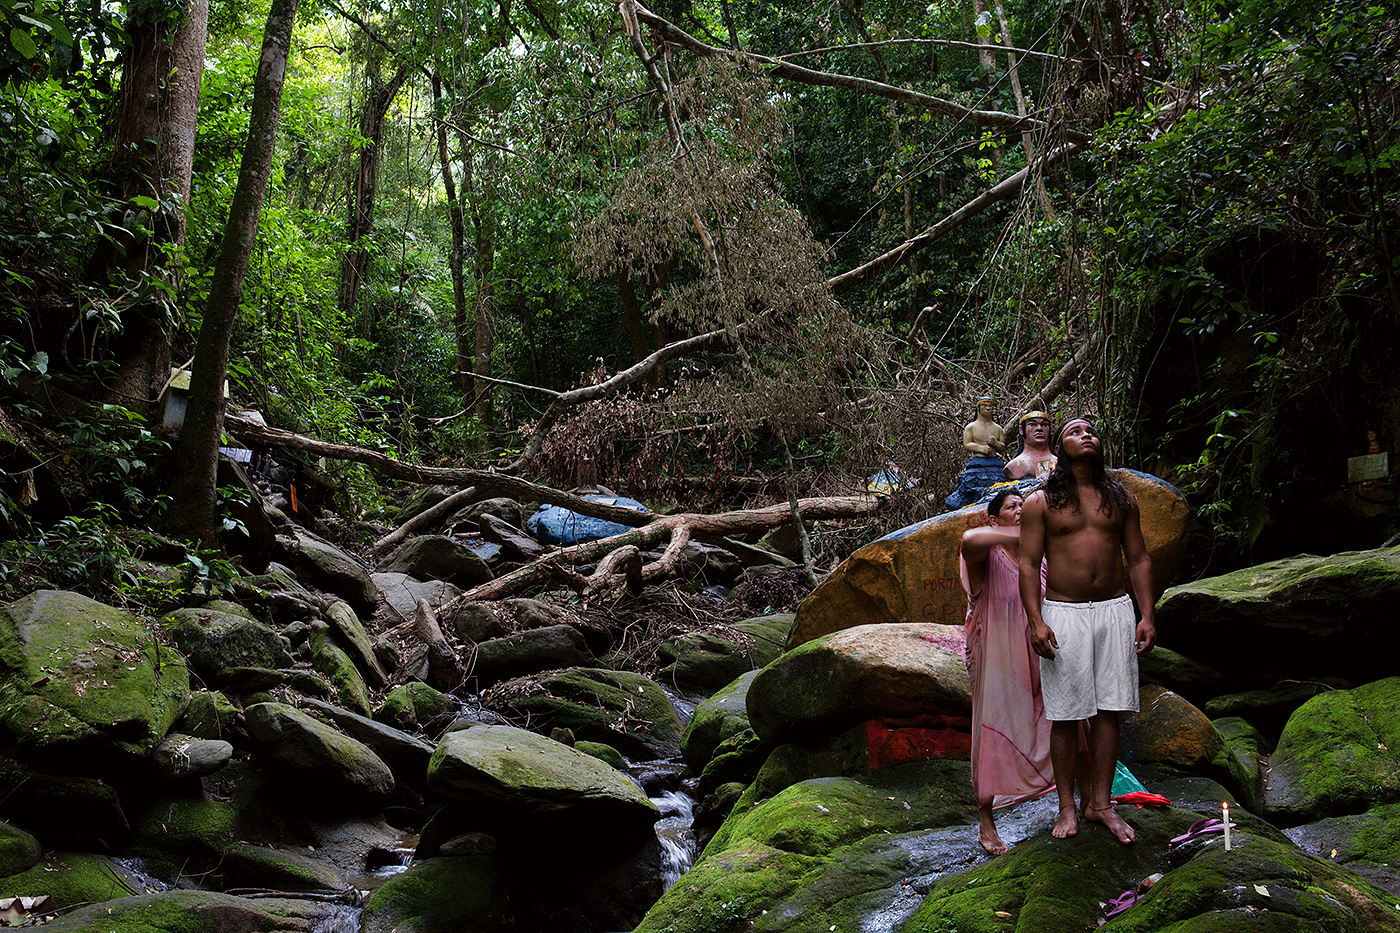 A mother prepares her son in a purification ritual to gather strength at the altar of the Indian Chief Gauicaipuro, whom led Venezuela's tribes against the conquest of the Spanish conquistadors and is revered among the Marialionceras.